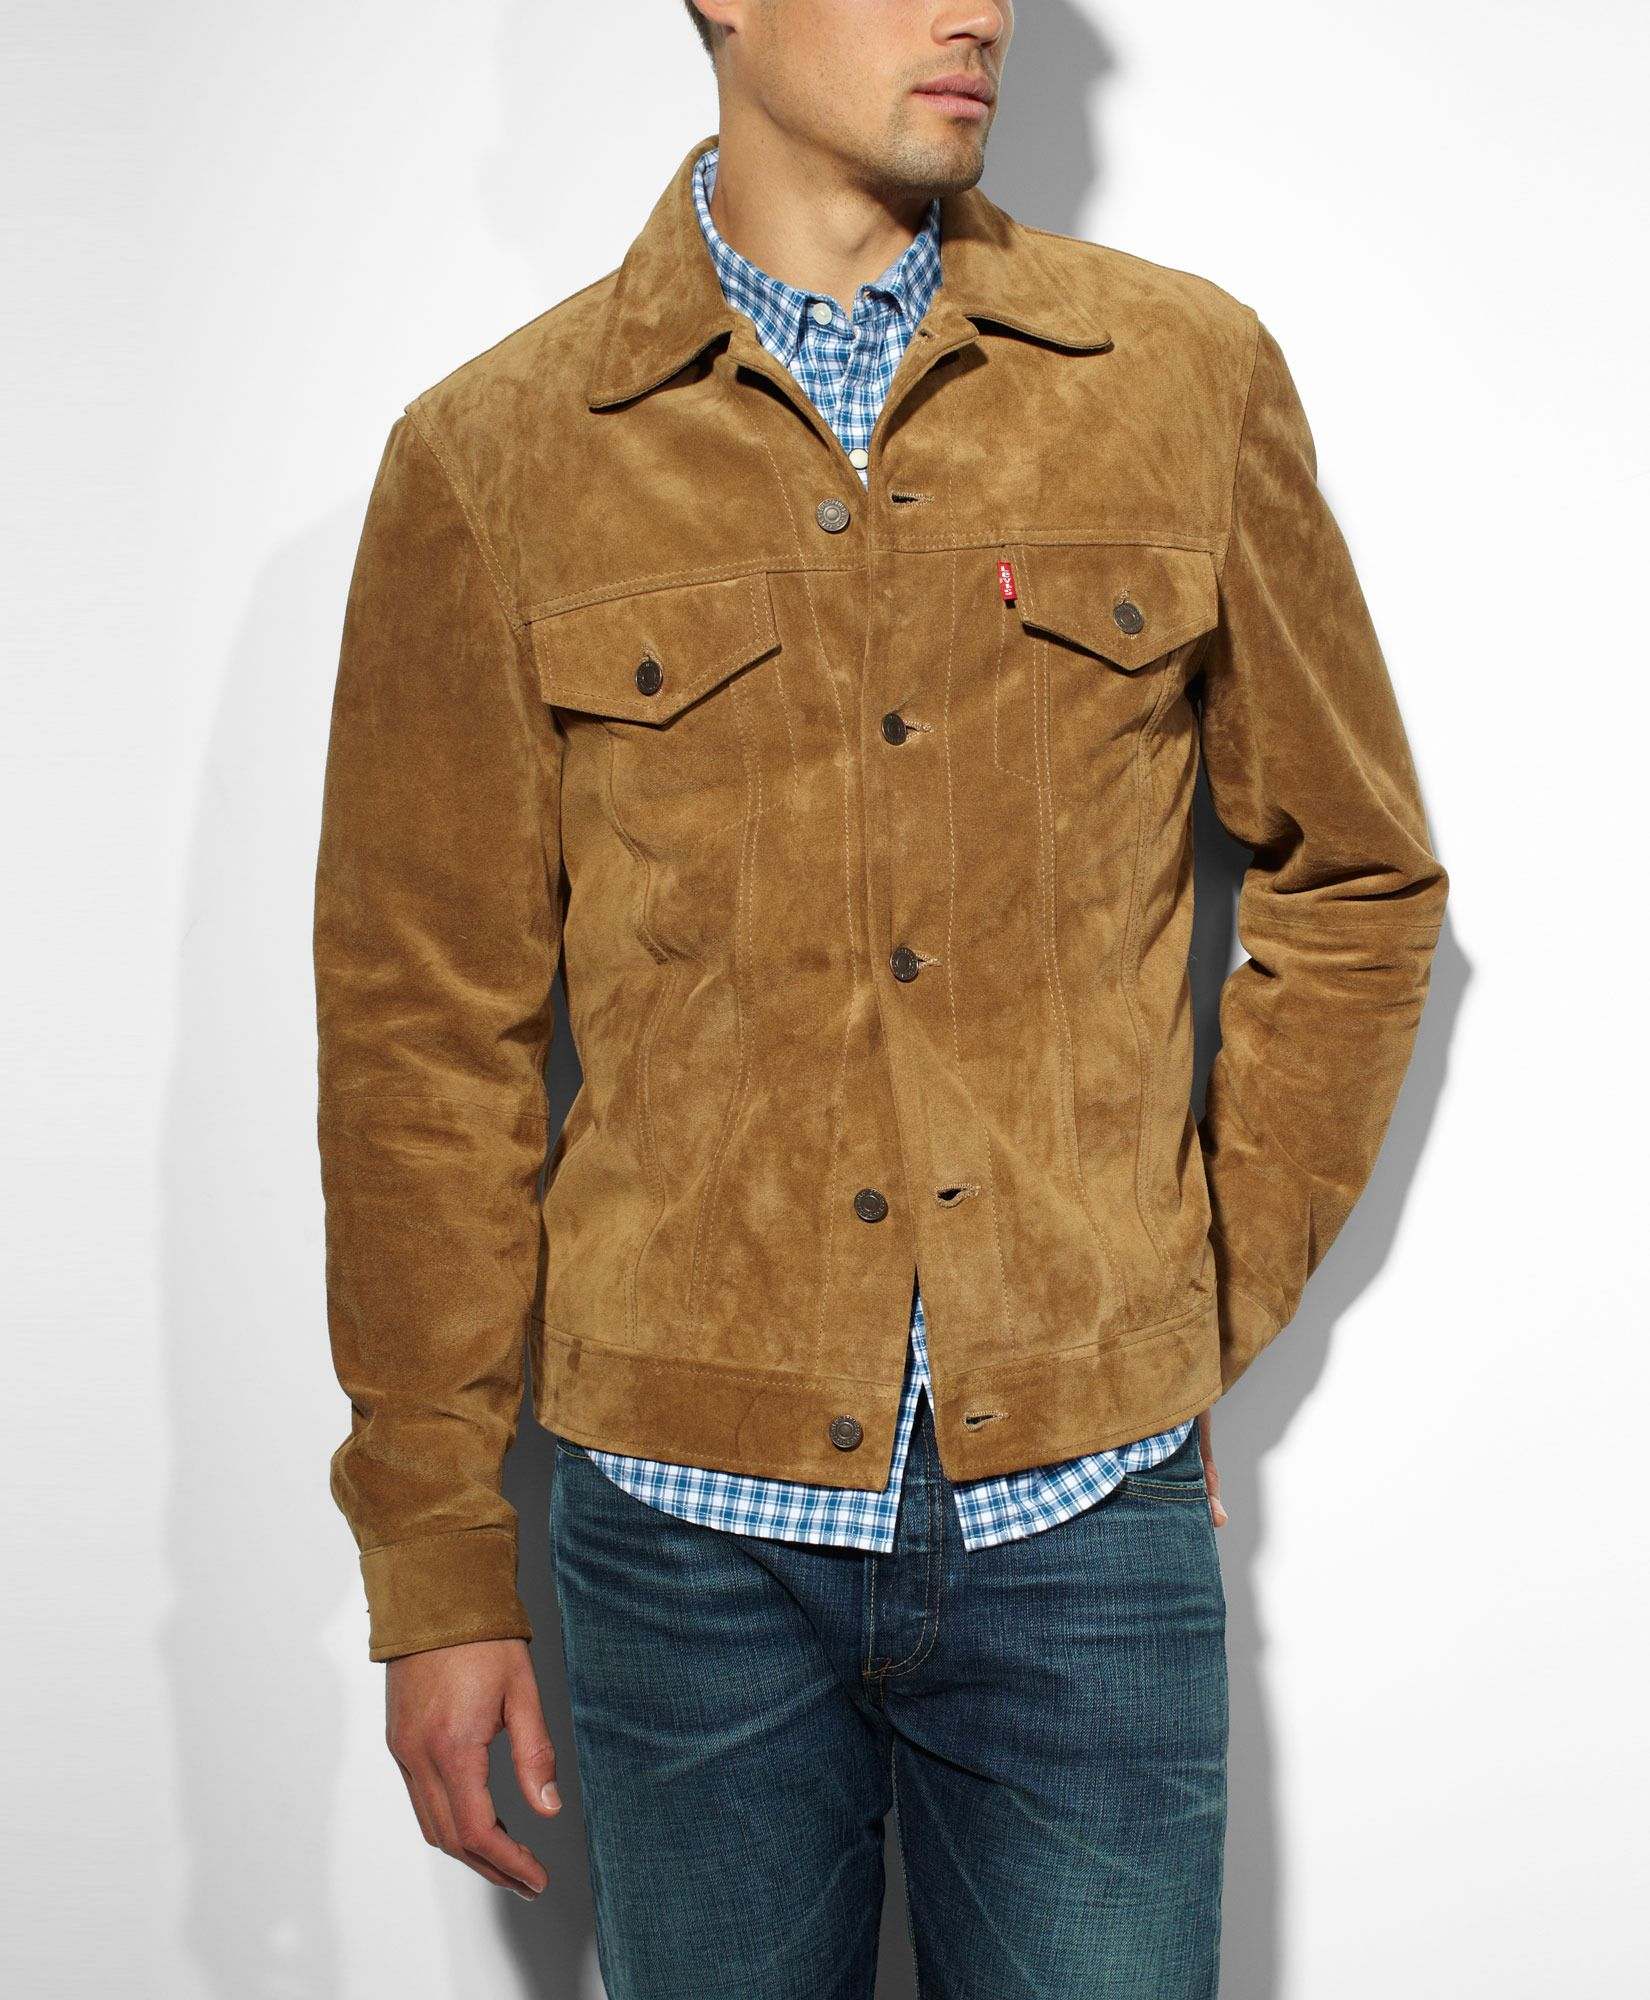 Levis Saddle Trucker Jacket Brown Suede Slim Fit